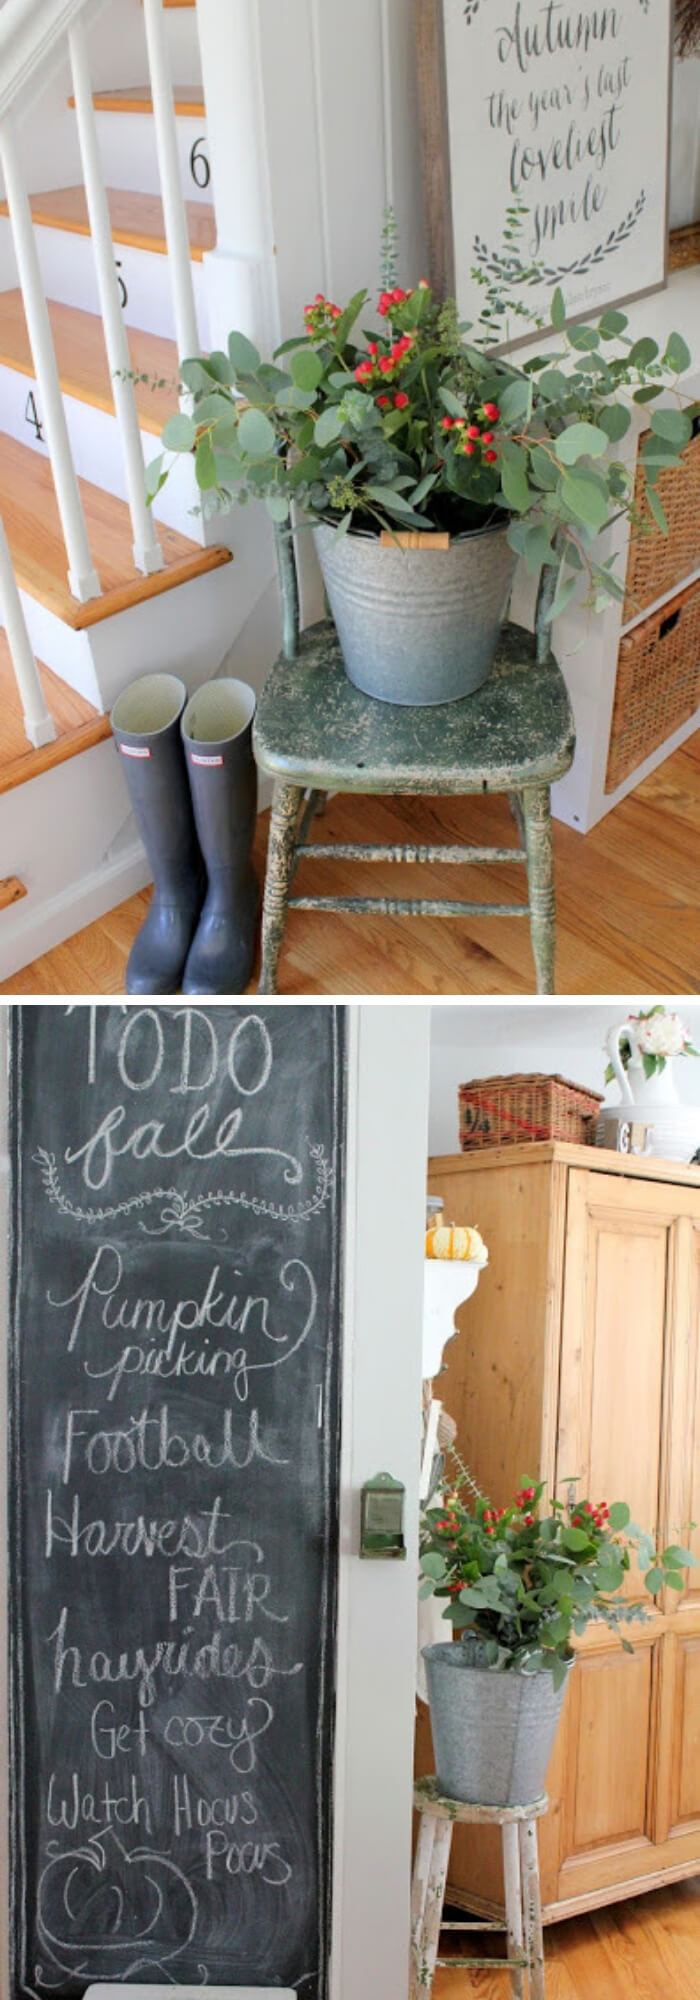 Galvanized bucket on an old chair with a chalk board | Best Farmhouse Indoor Plant Decor Ideas & Designs